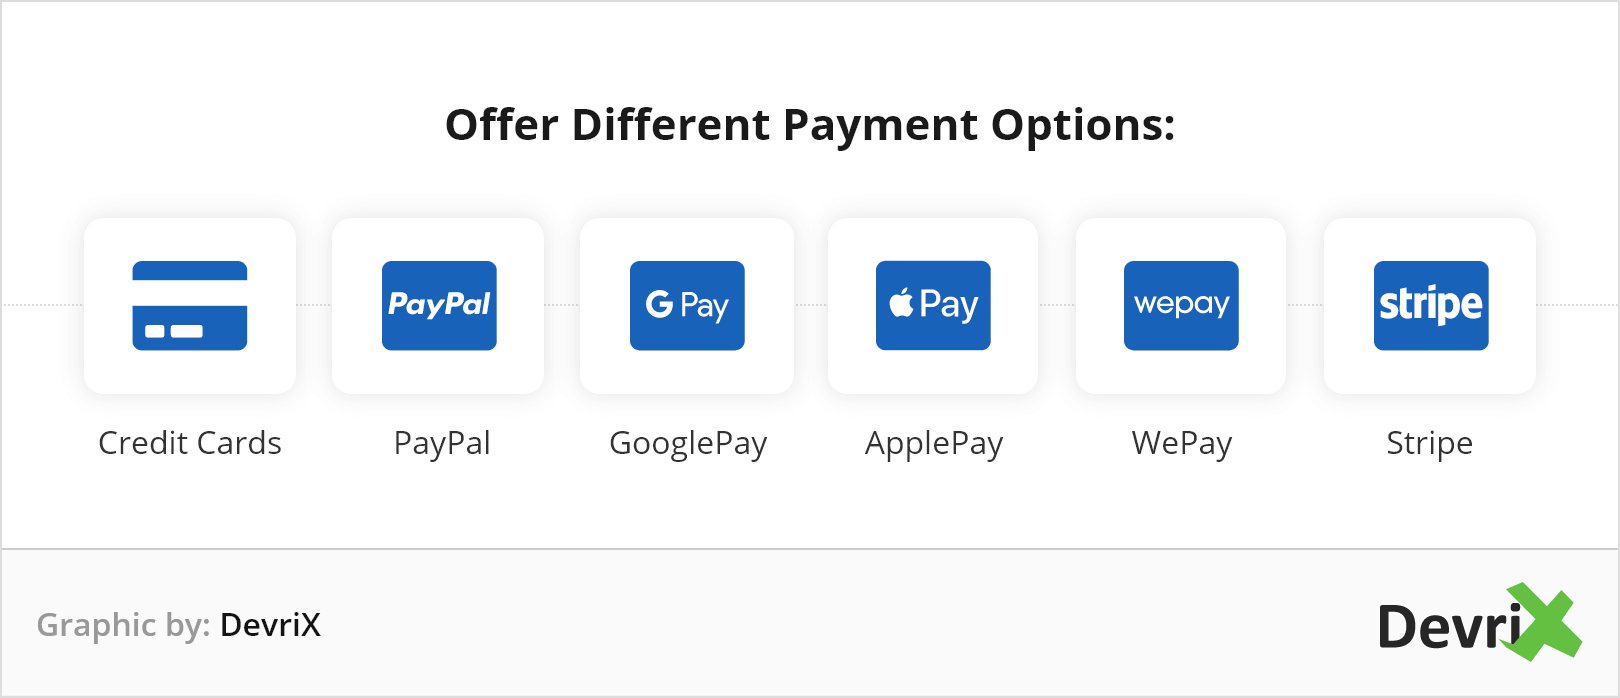 Offer Different Payment Options